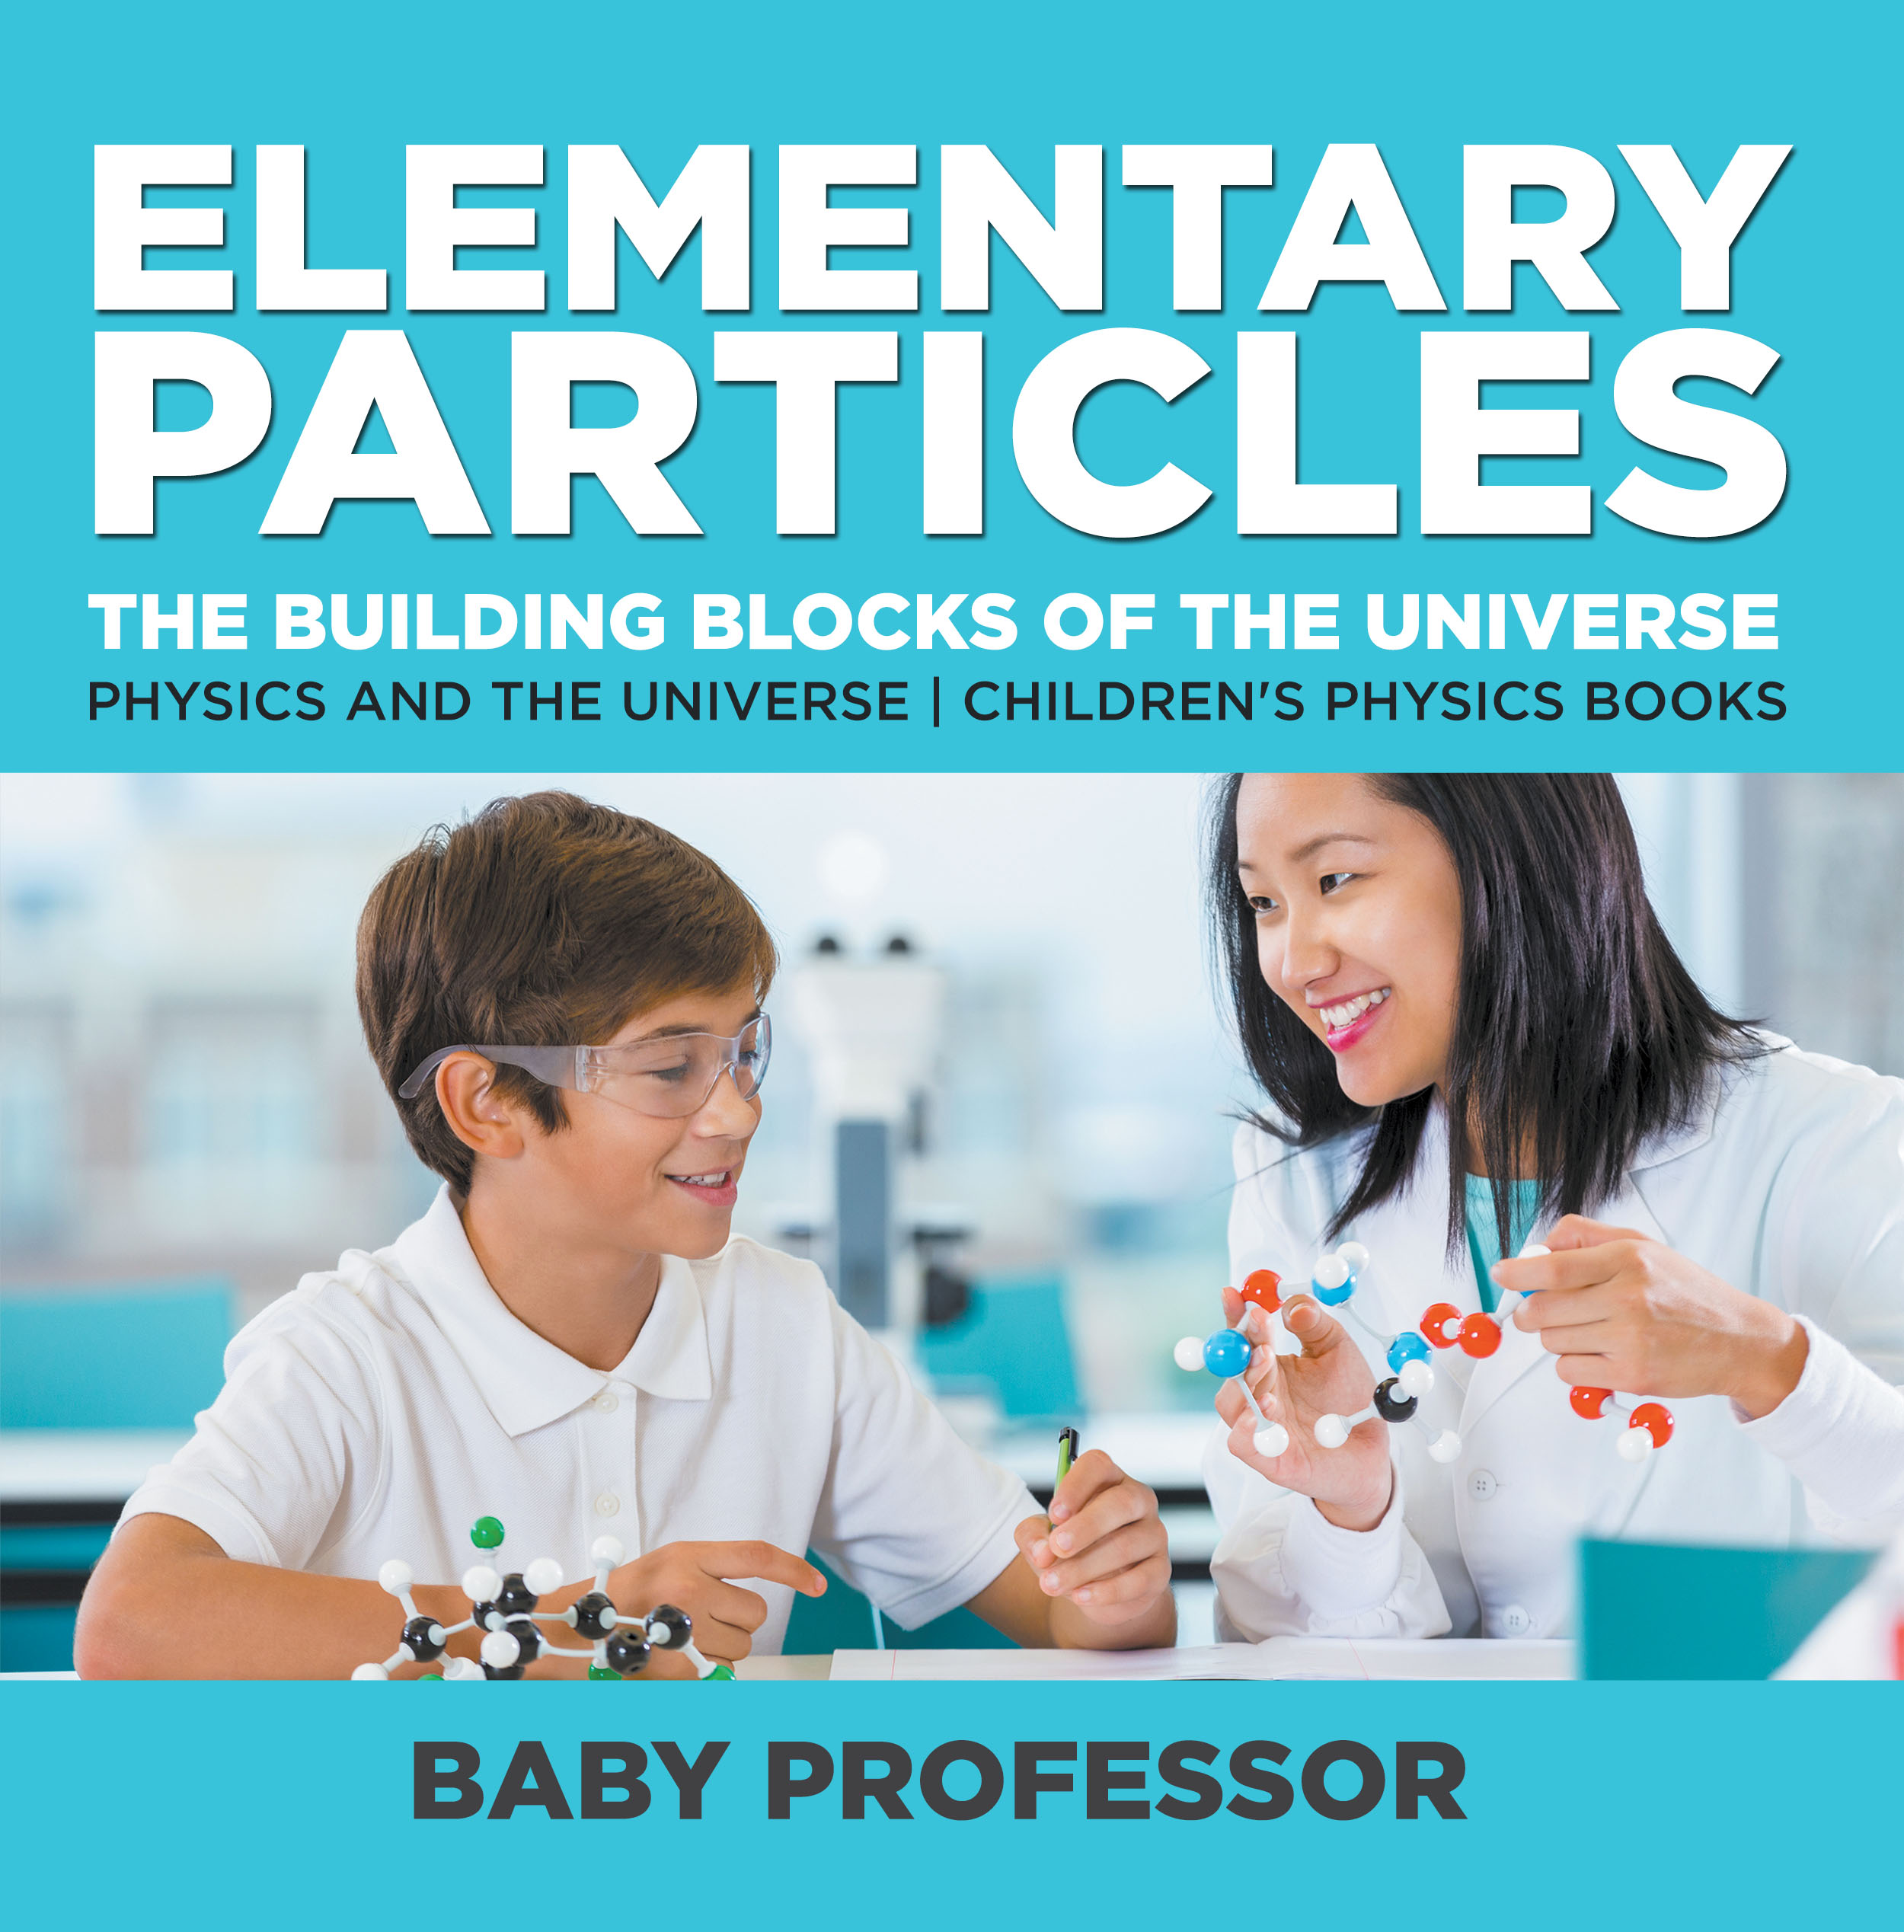 Elementary Particles : The Building Blocks of the Universe - Physics and the Universe / Children's Physics Books